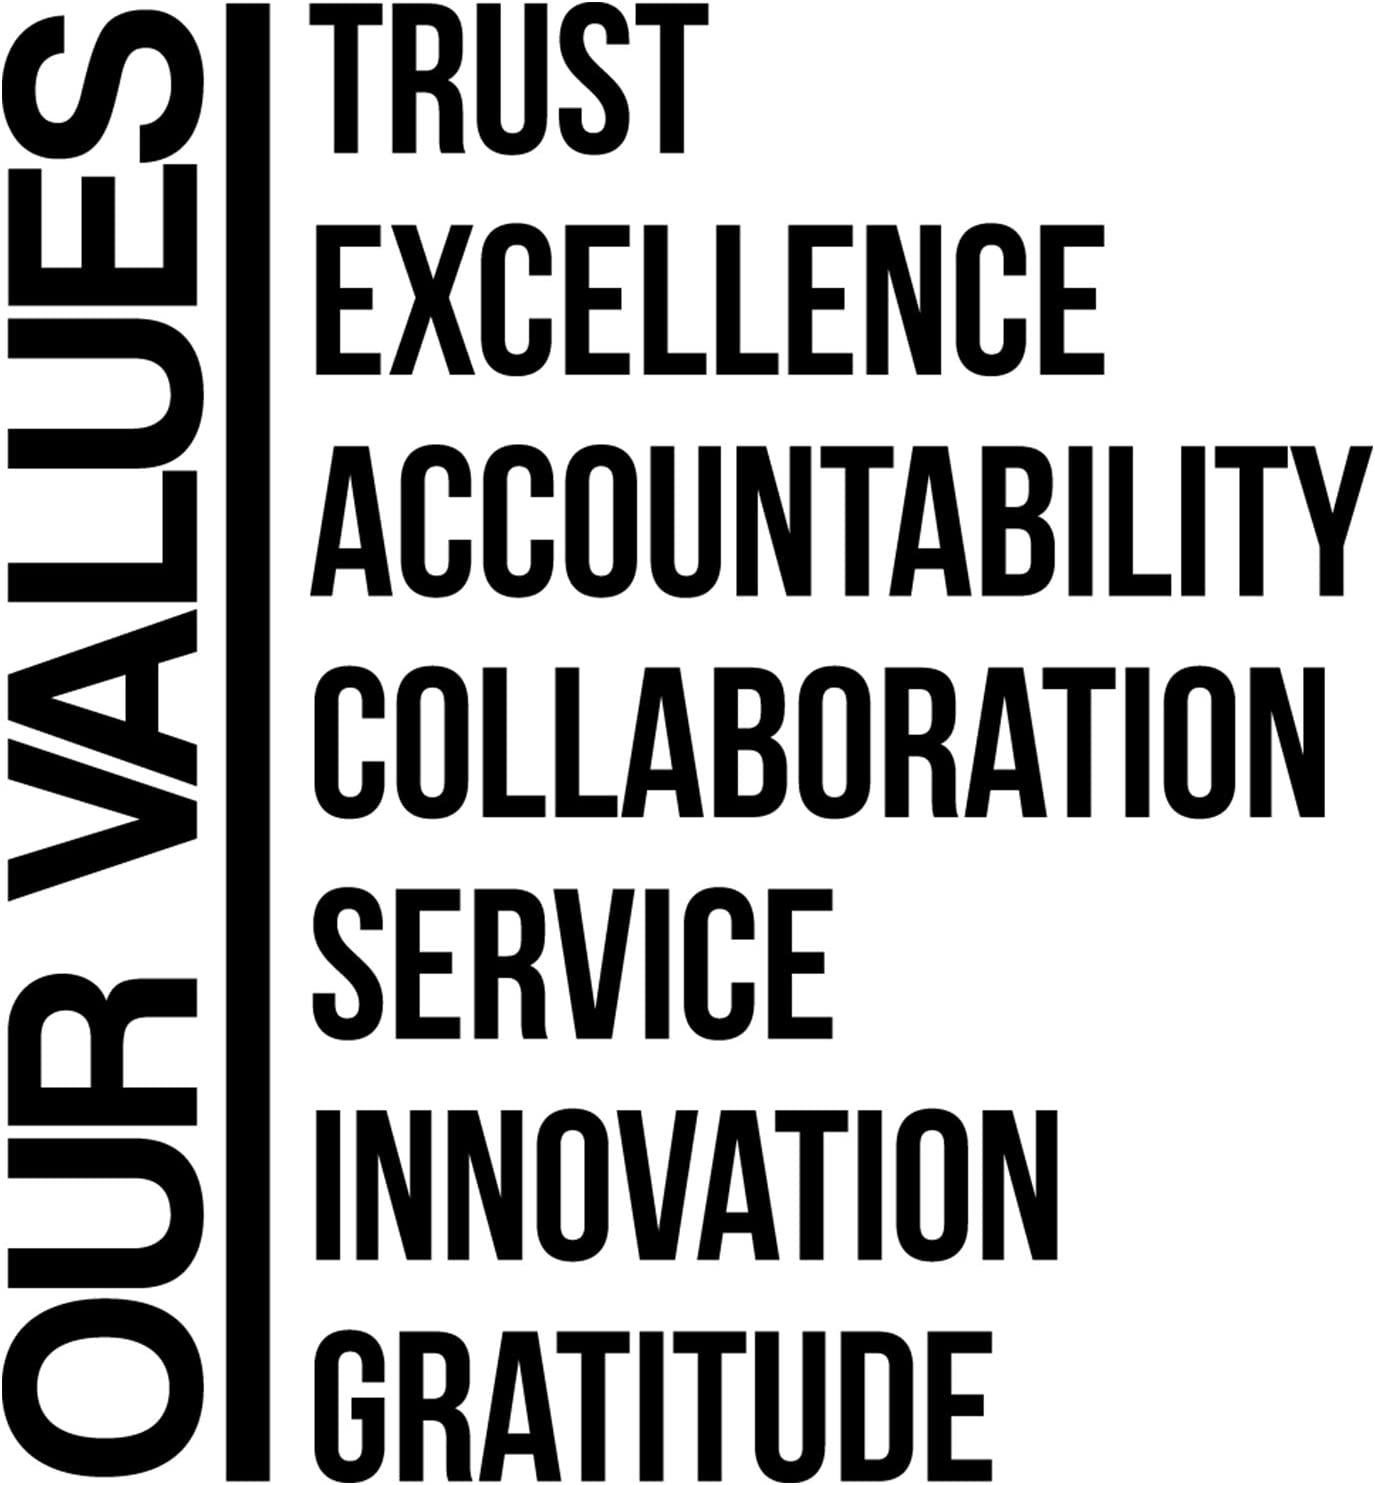 My Vinyl Story Our Values Office Decor Wall Art Wall Decal Inspirational Motivational Vinyl Office Supplies Home Gym Work Success Wall Sticker Teamwork Welcome Quote Business Sign Gift